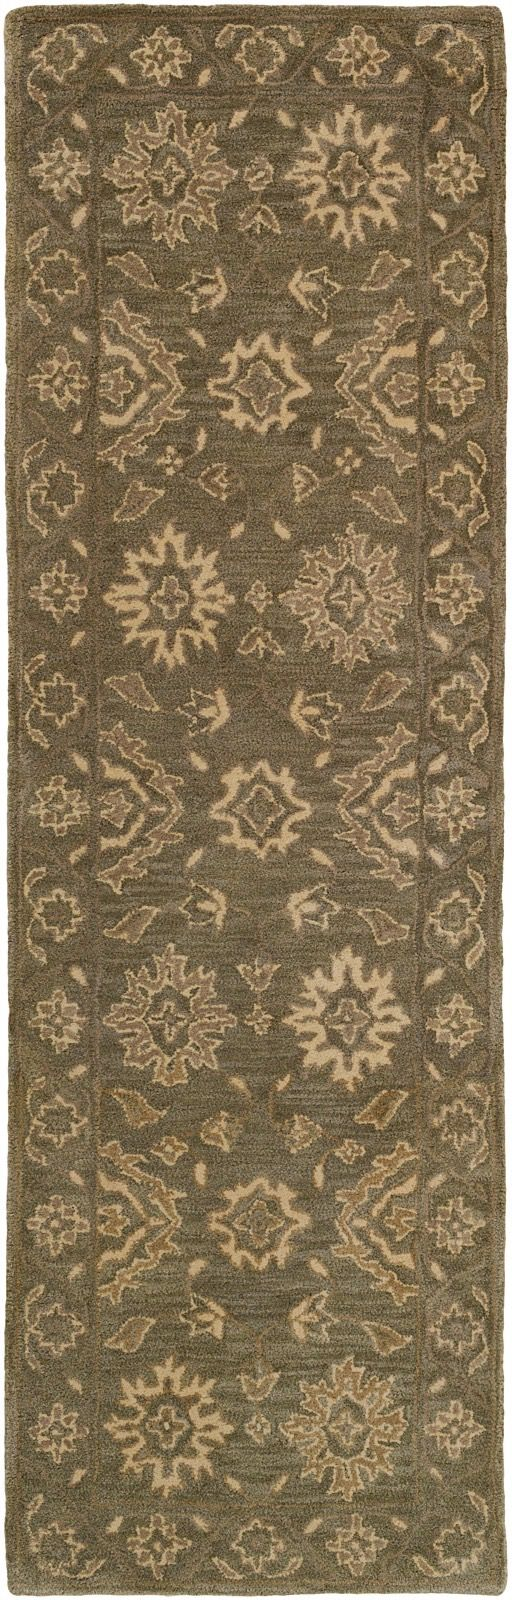 surya blumenthal traditional area rug collection